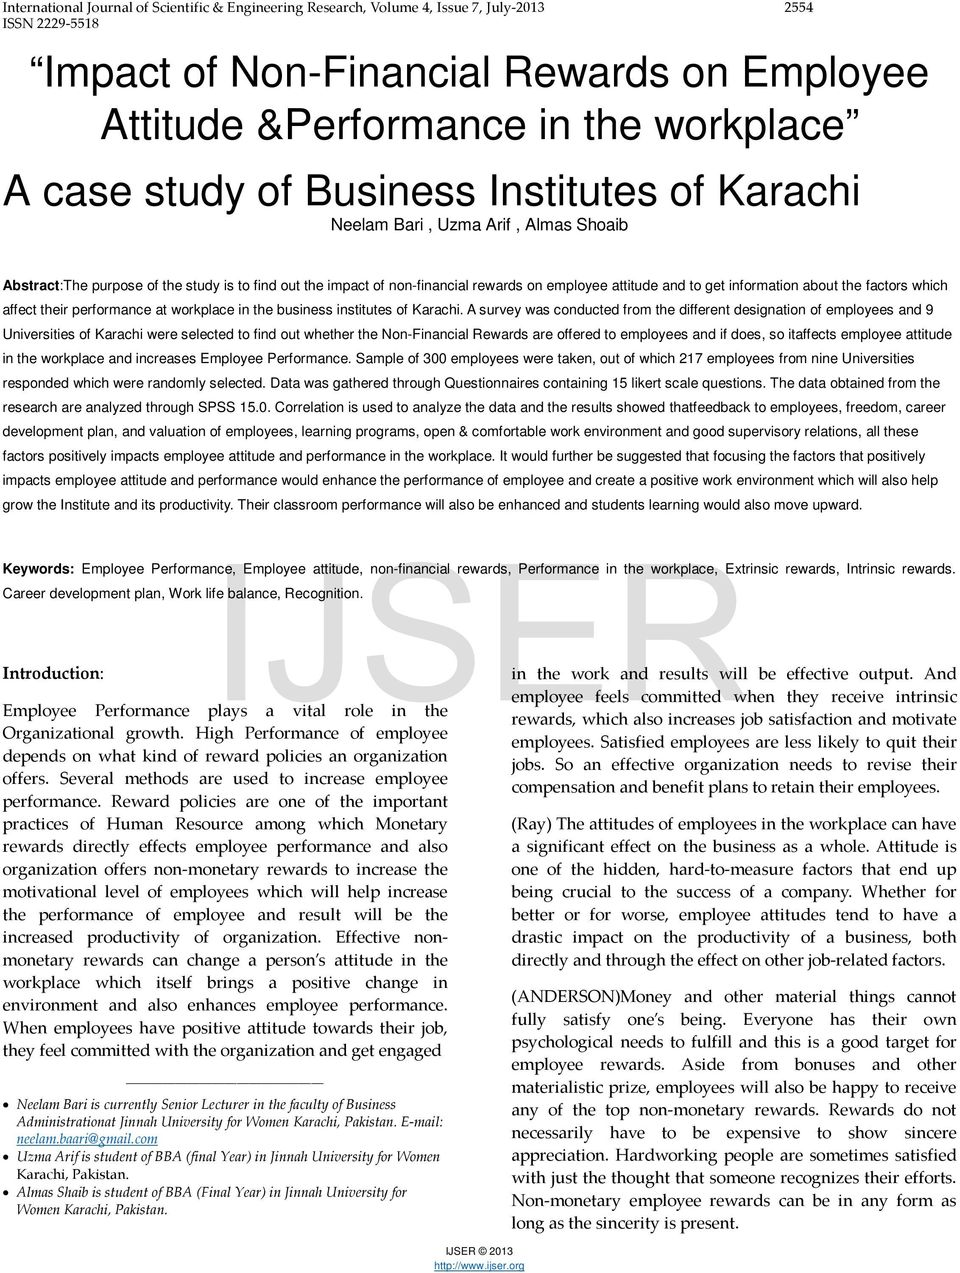 about the factors which affect their performance at workplace in the business institutes of Karachi.